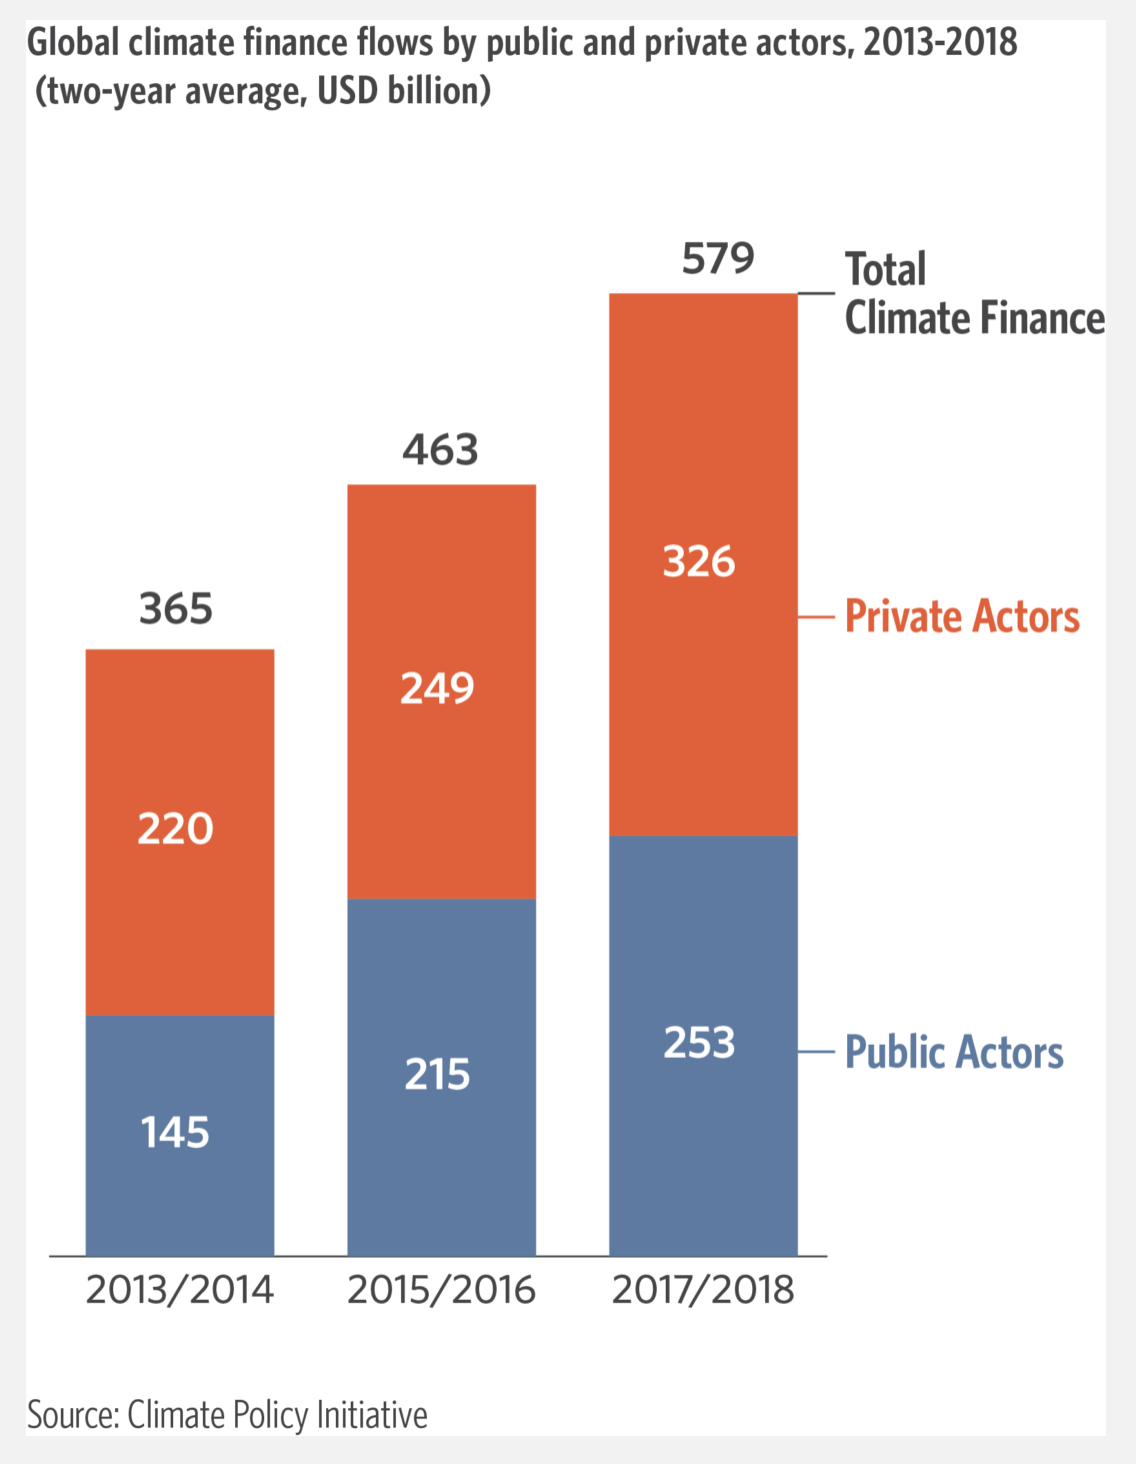 A breakdown of climate finance flows over the past few years